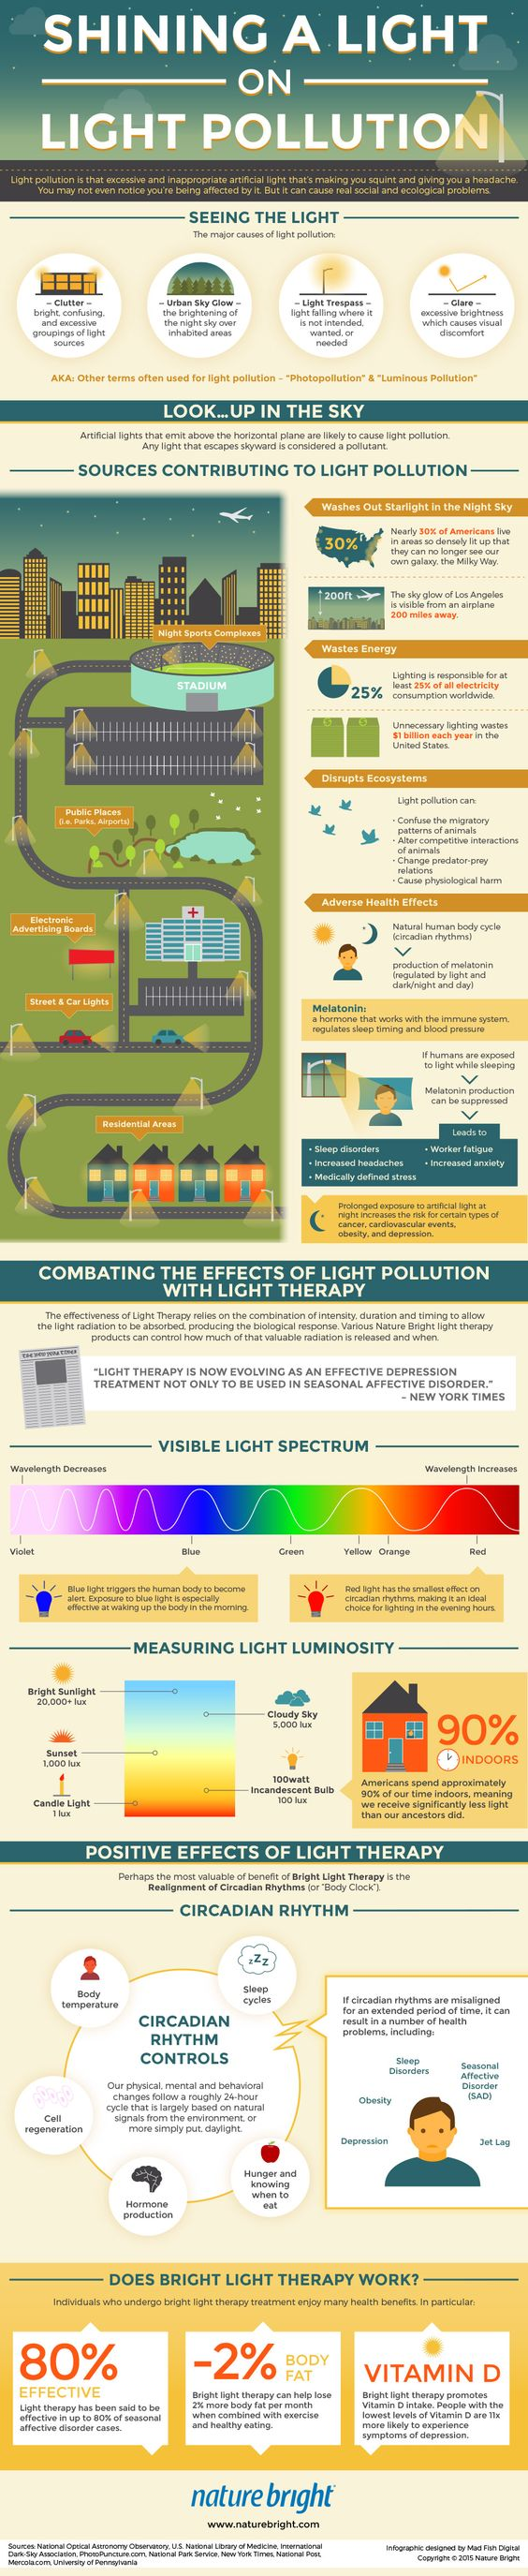 What is light pollution? What problems does it cause and how do you combat it? This infographic answers all these questions for you.